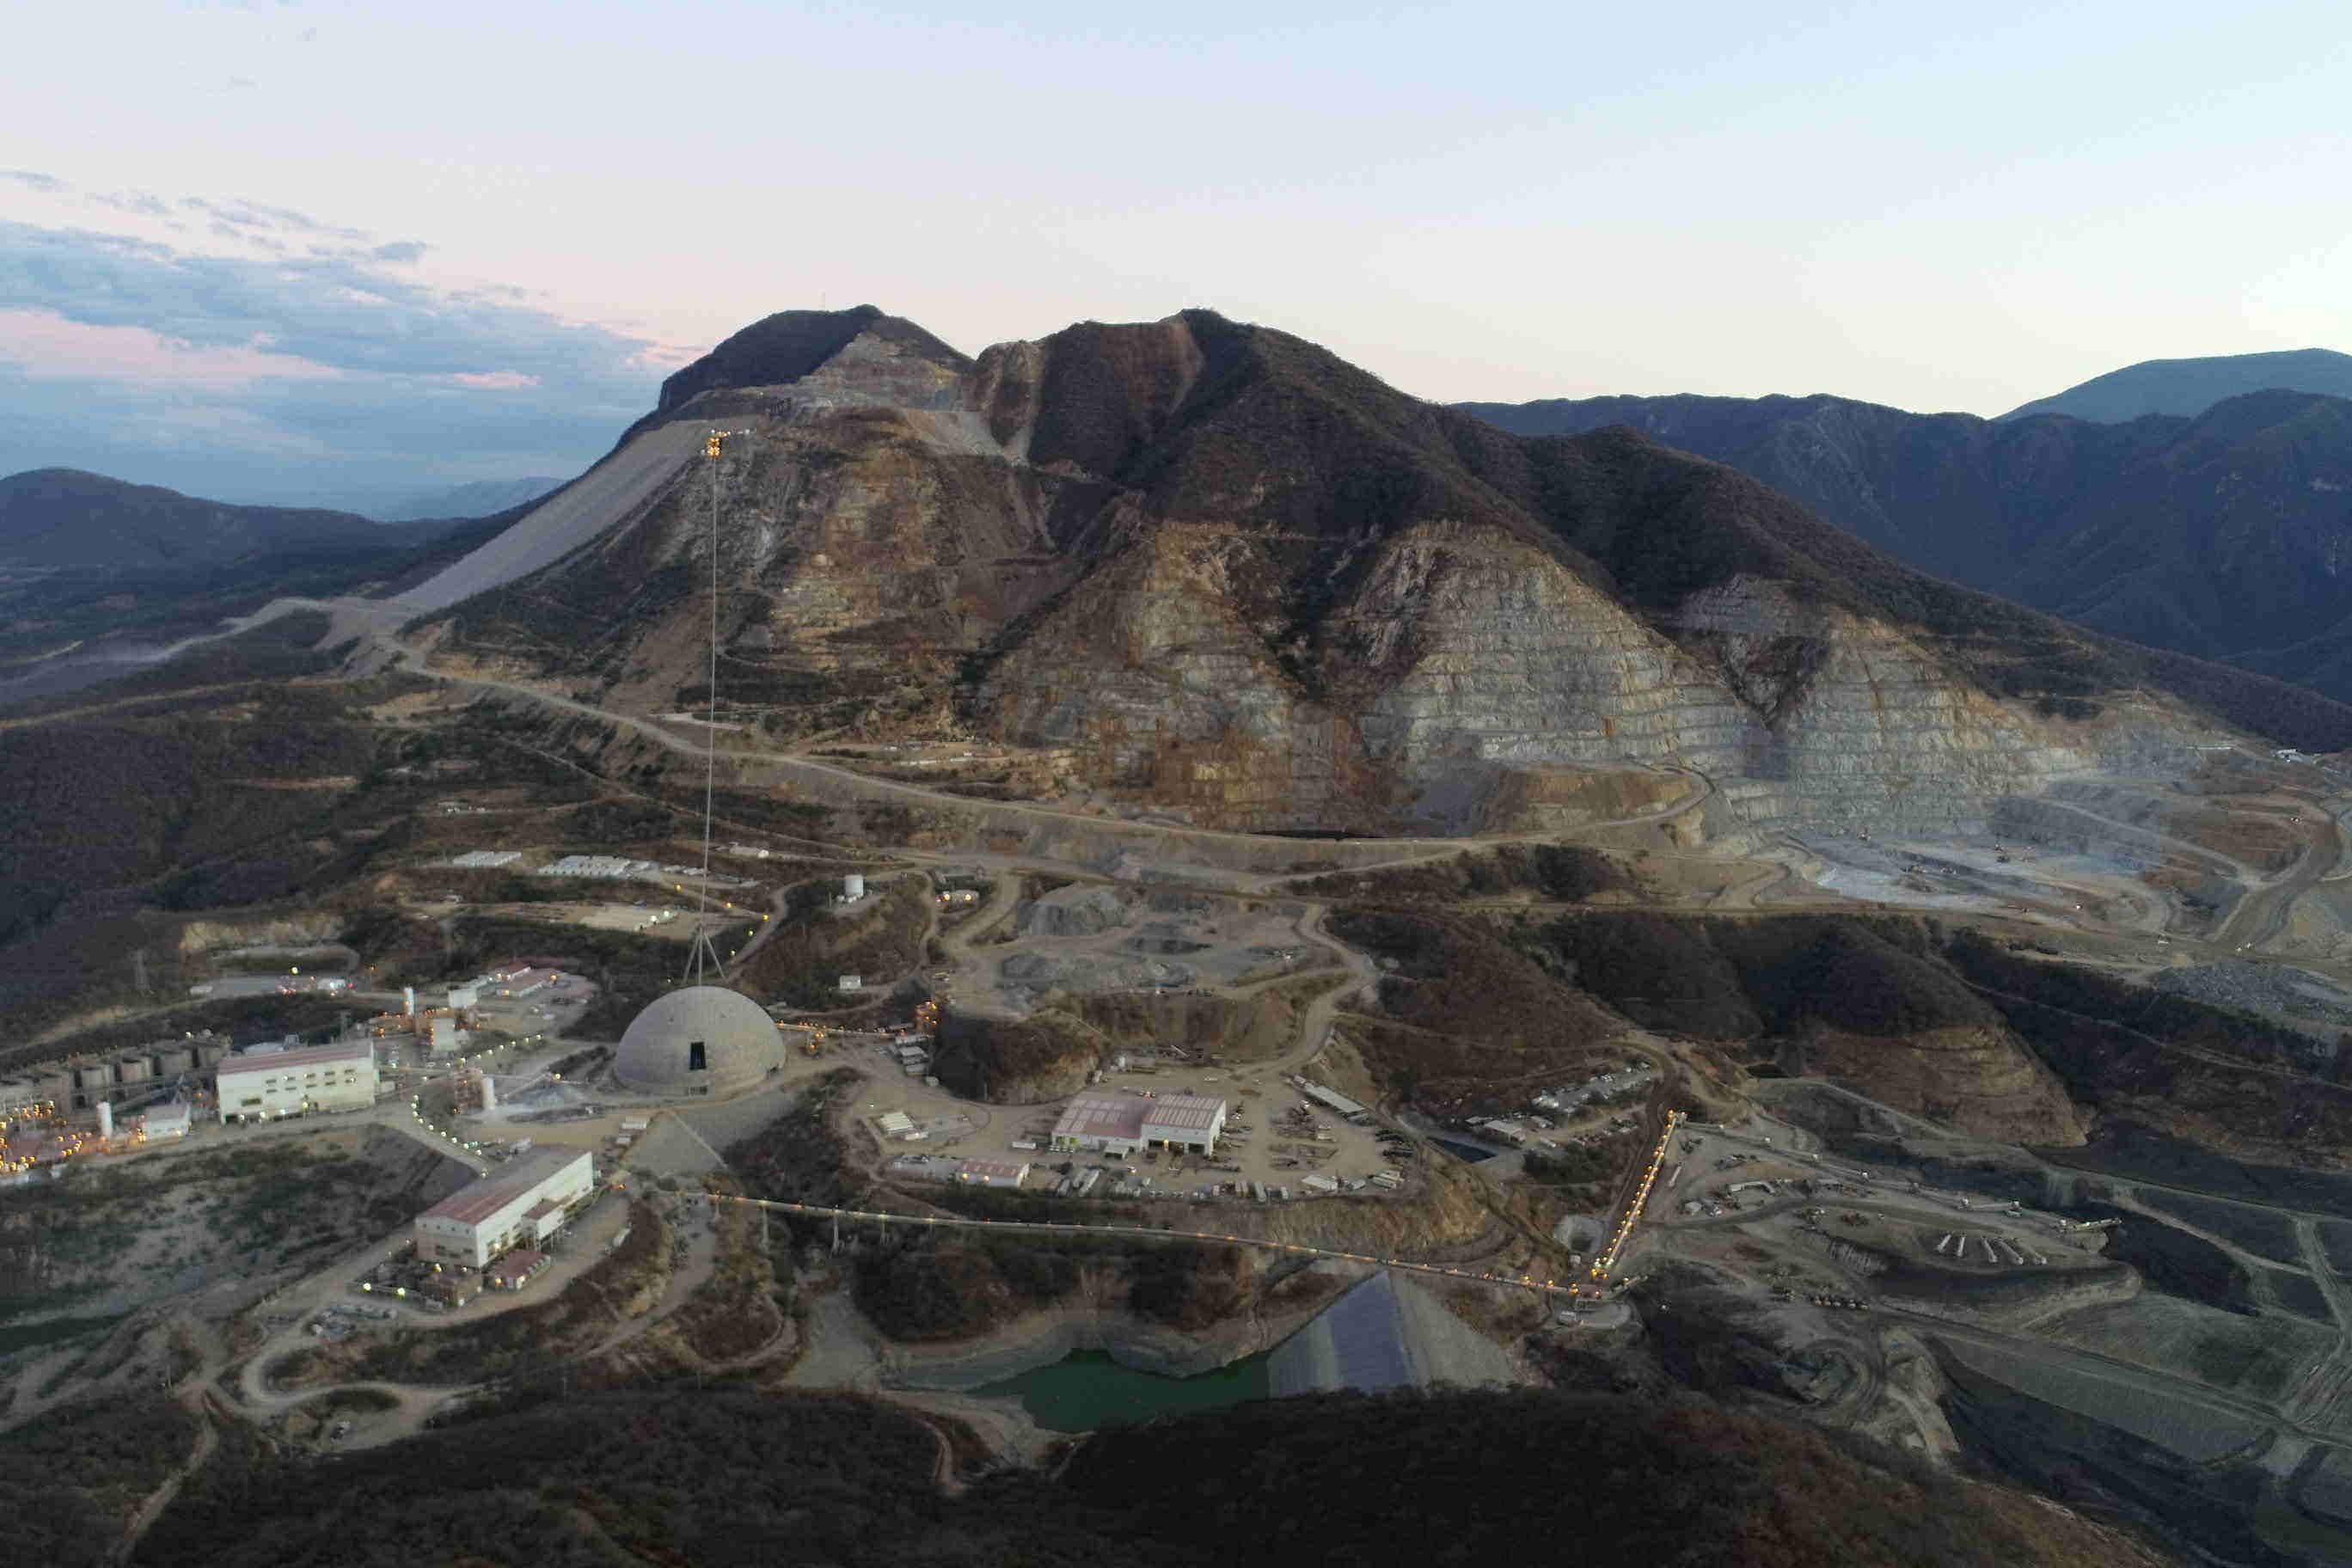 Top LatAm gold mines hit by COVID-19 hangover